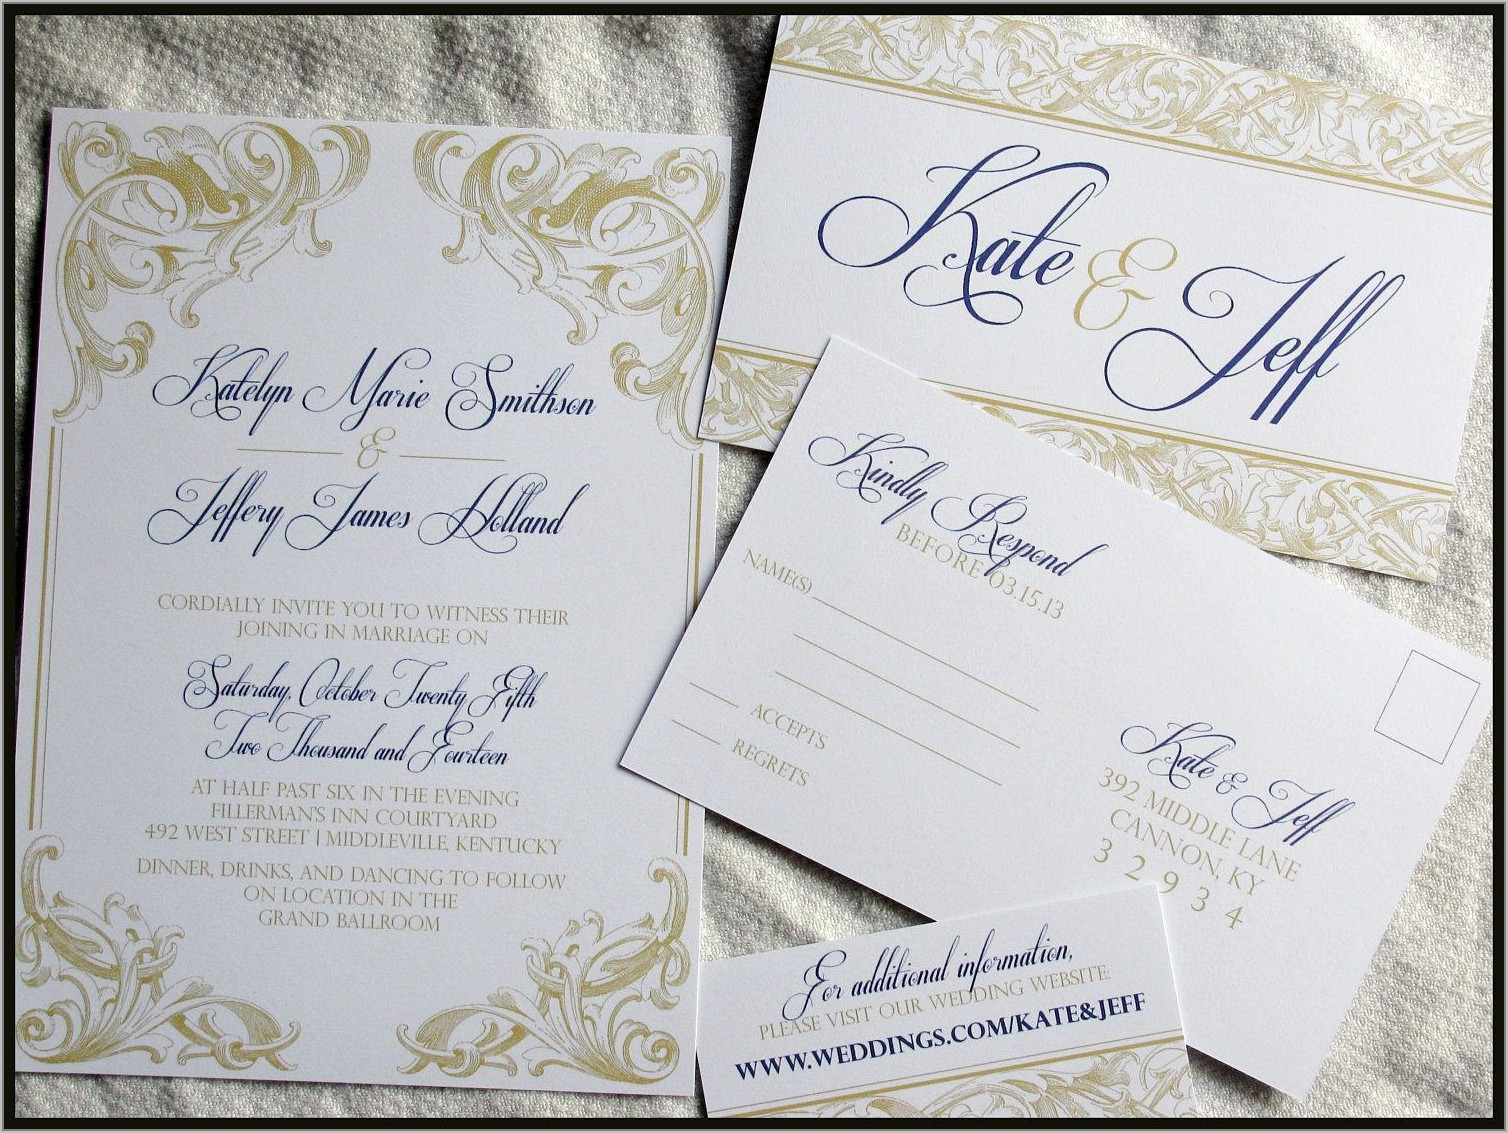 Royal Wedding Invitation Designs